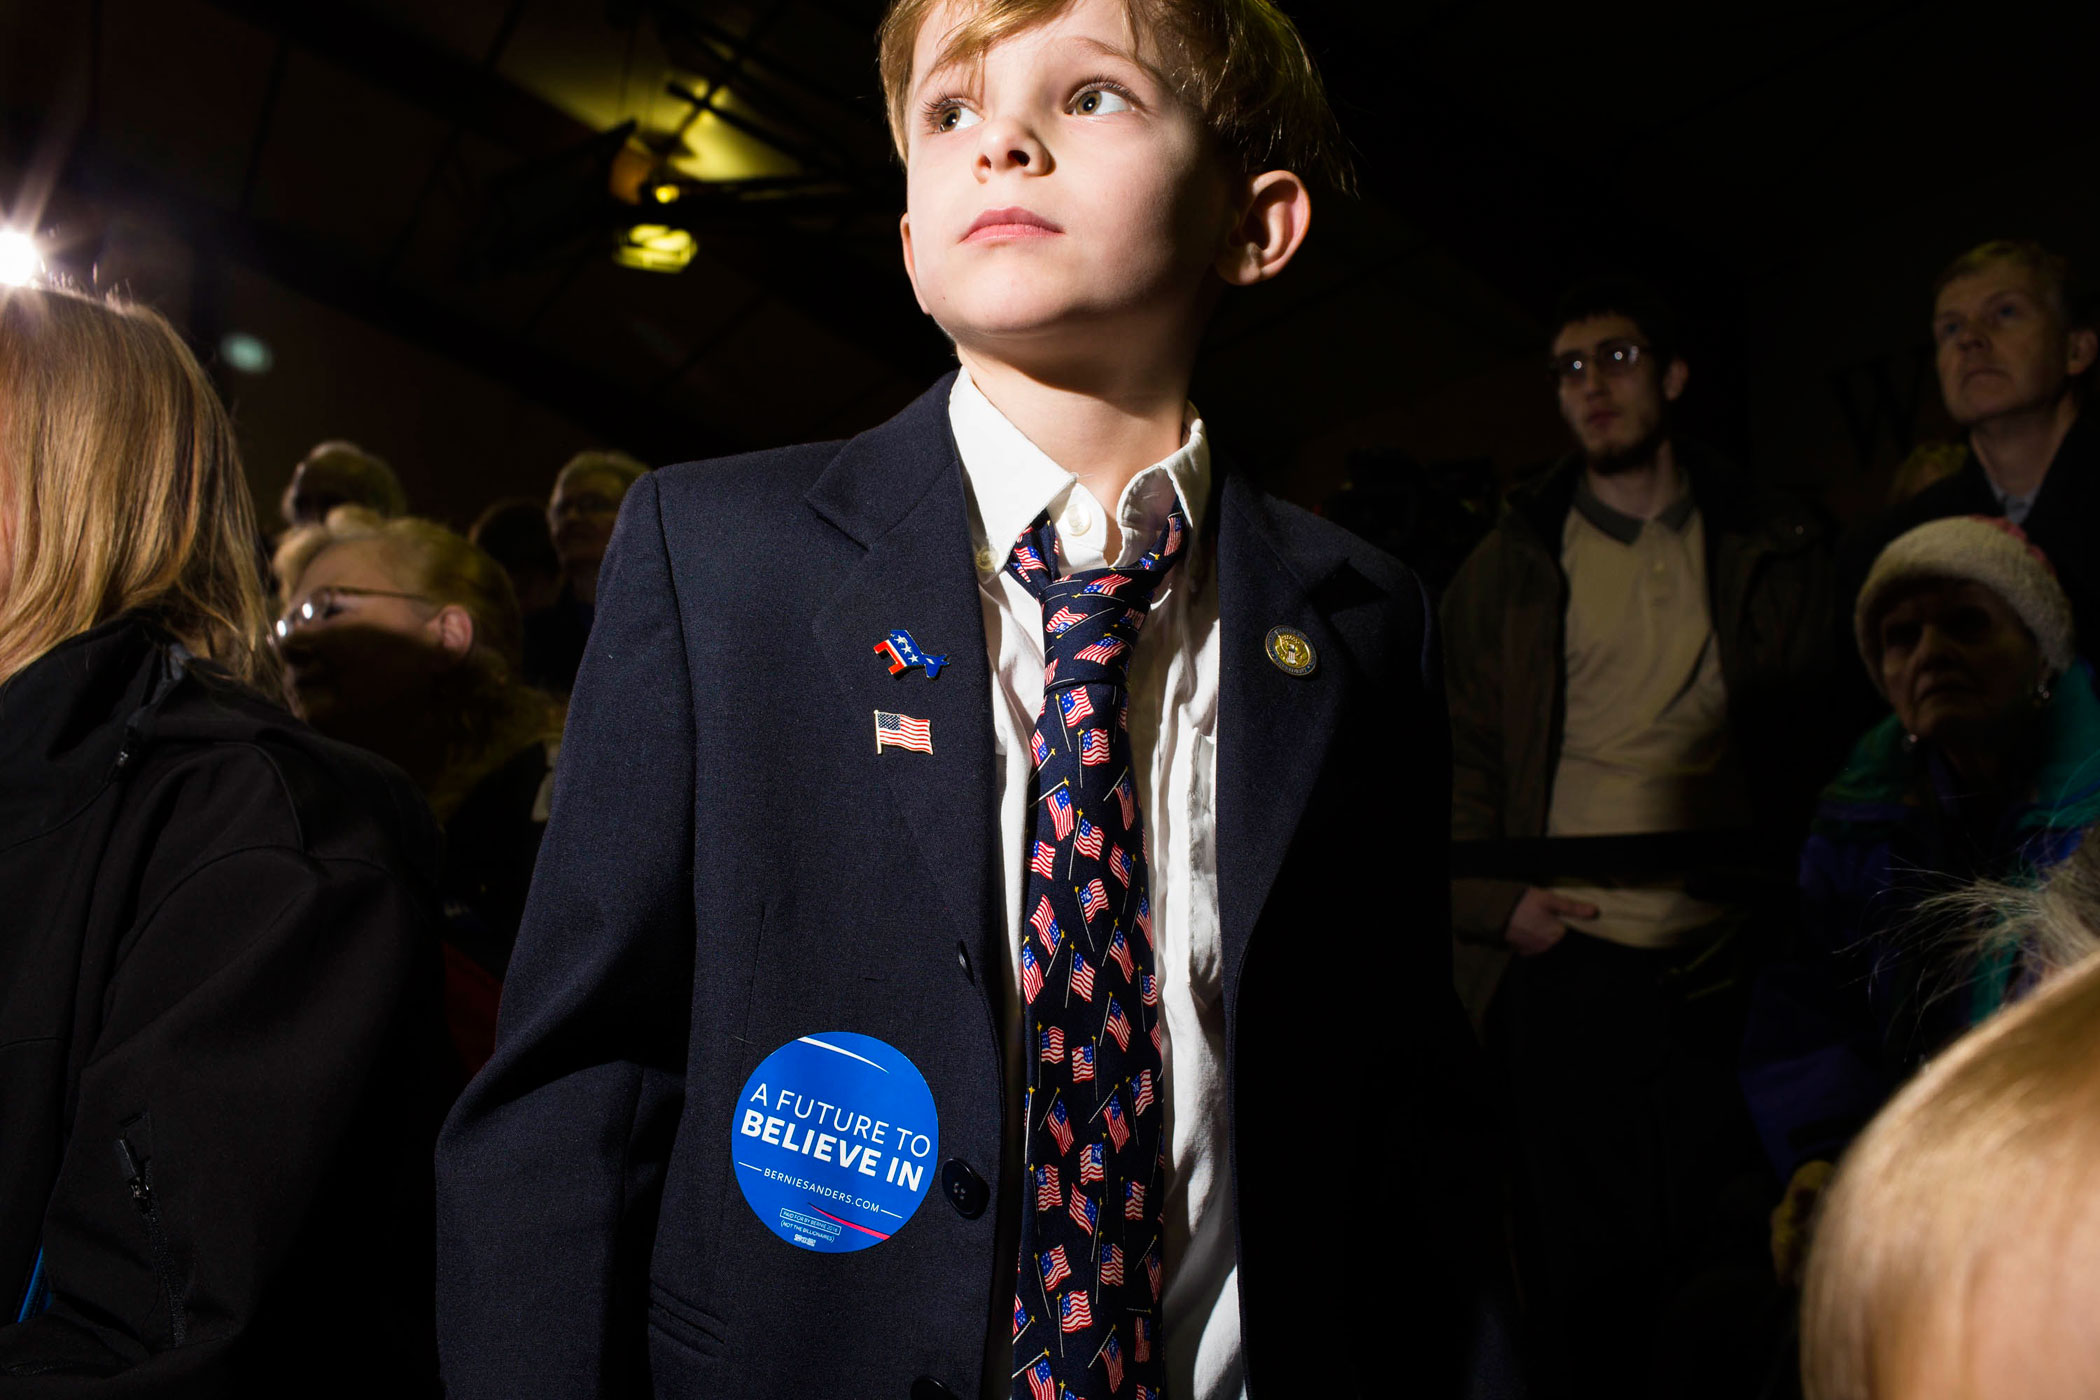 A young supporter of Vermont Sen. Bernie Sanders attends a  campaign event at Daniel Webster Community College on Feb. 8, 2016, in Nashua, N.H.